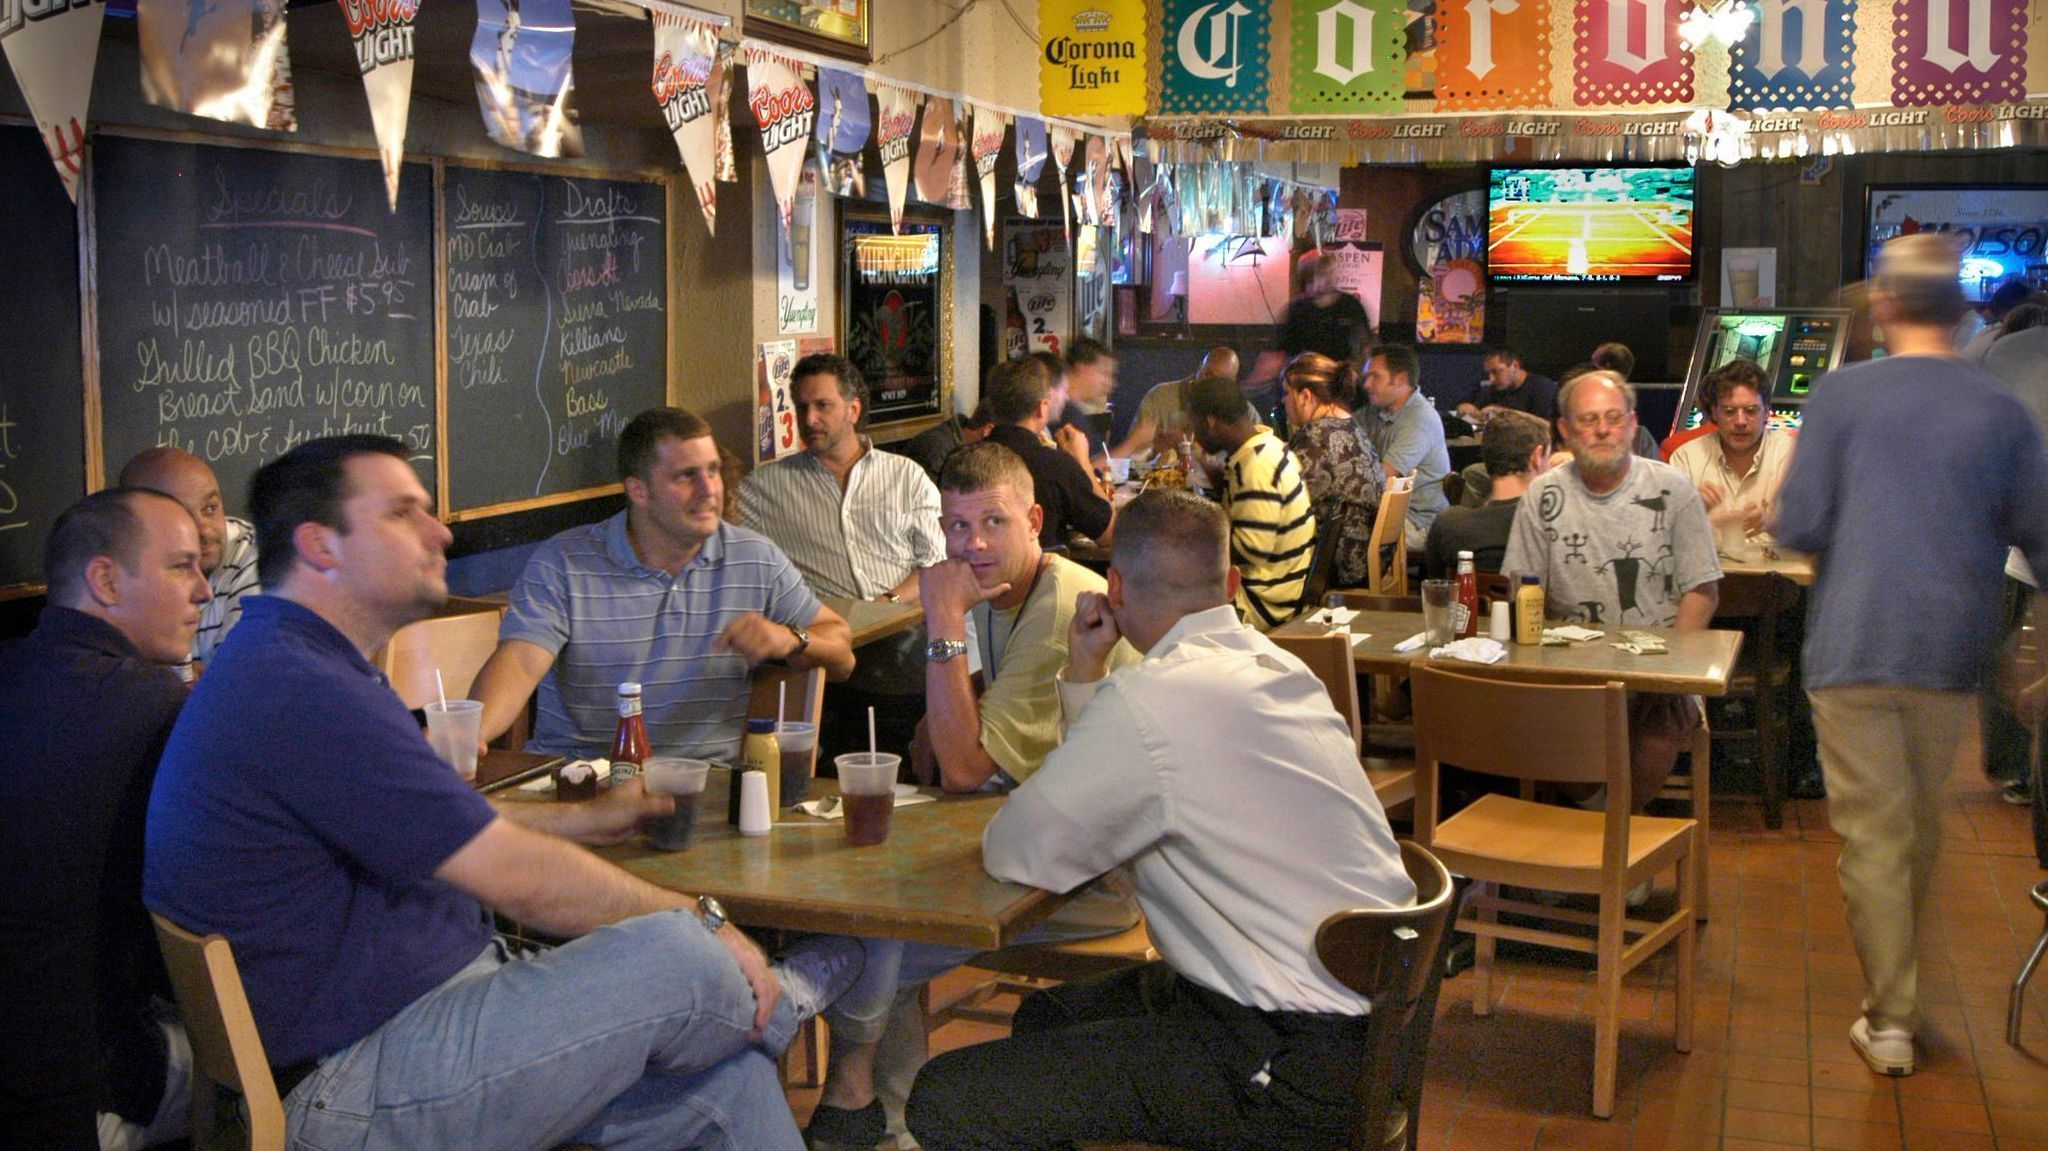 PJ s Pub  a veteran Charles Village sports bar  to close after     PJ s Pub  a veteran Charles Village sports bar  to close after tonight    Baltimore Sun